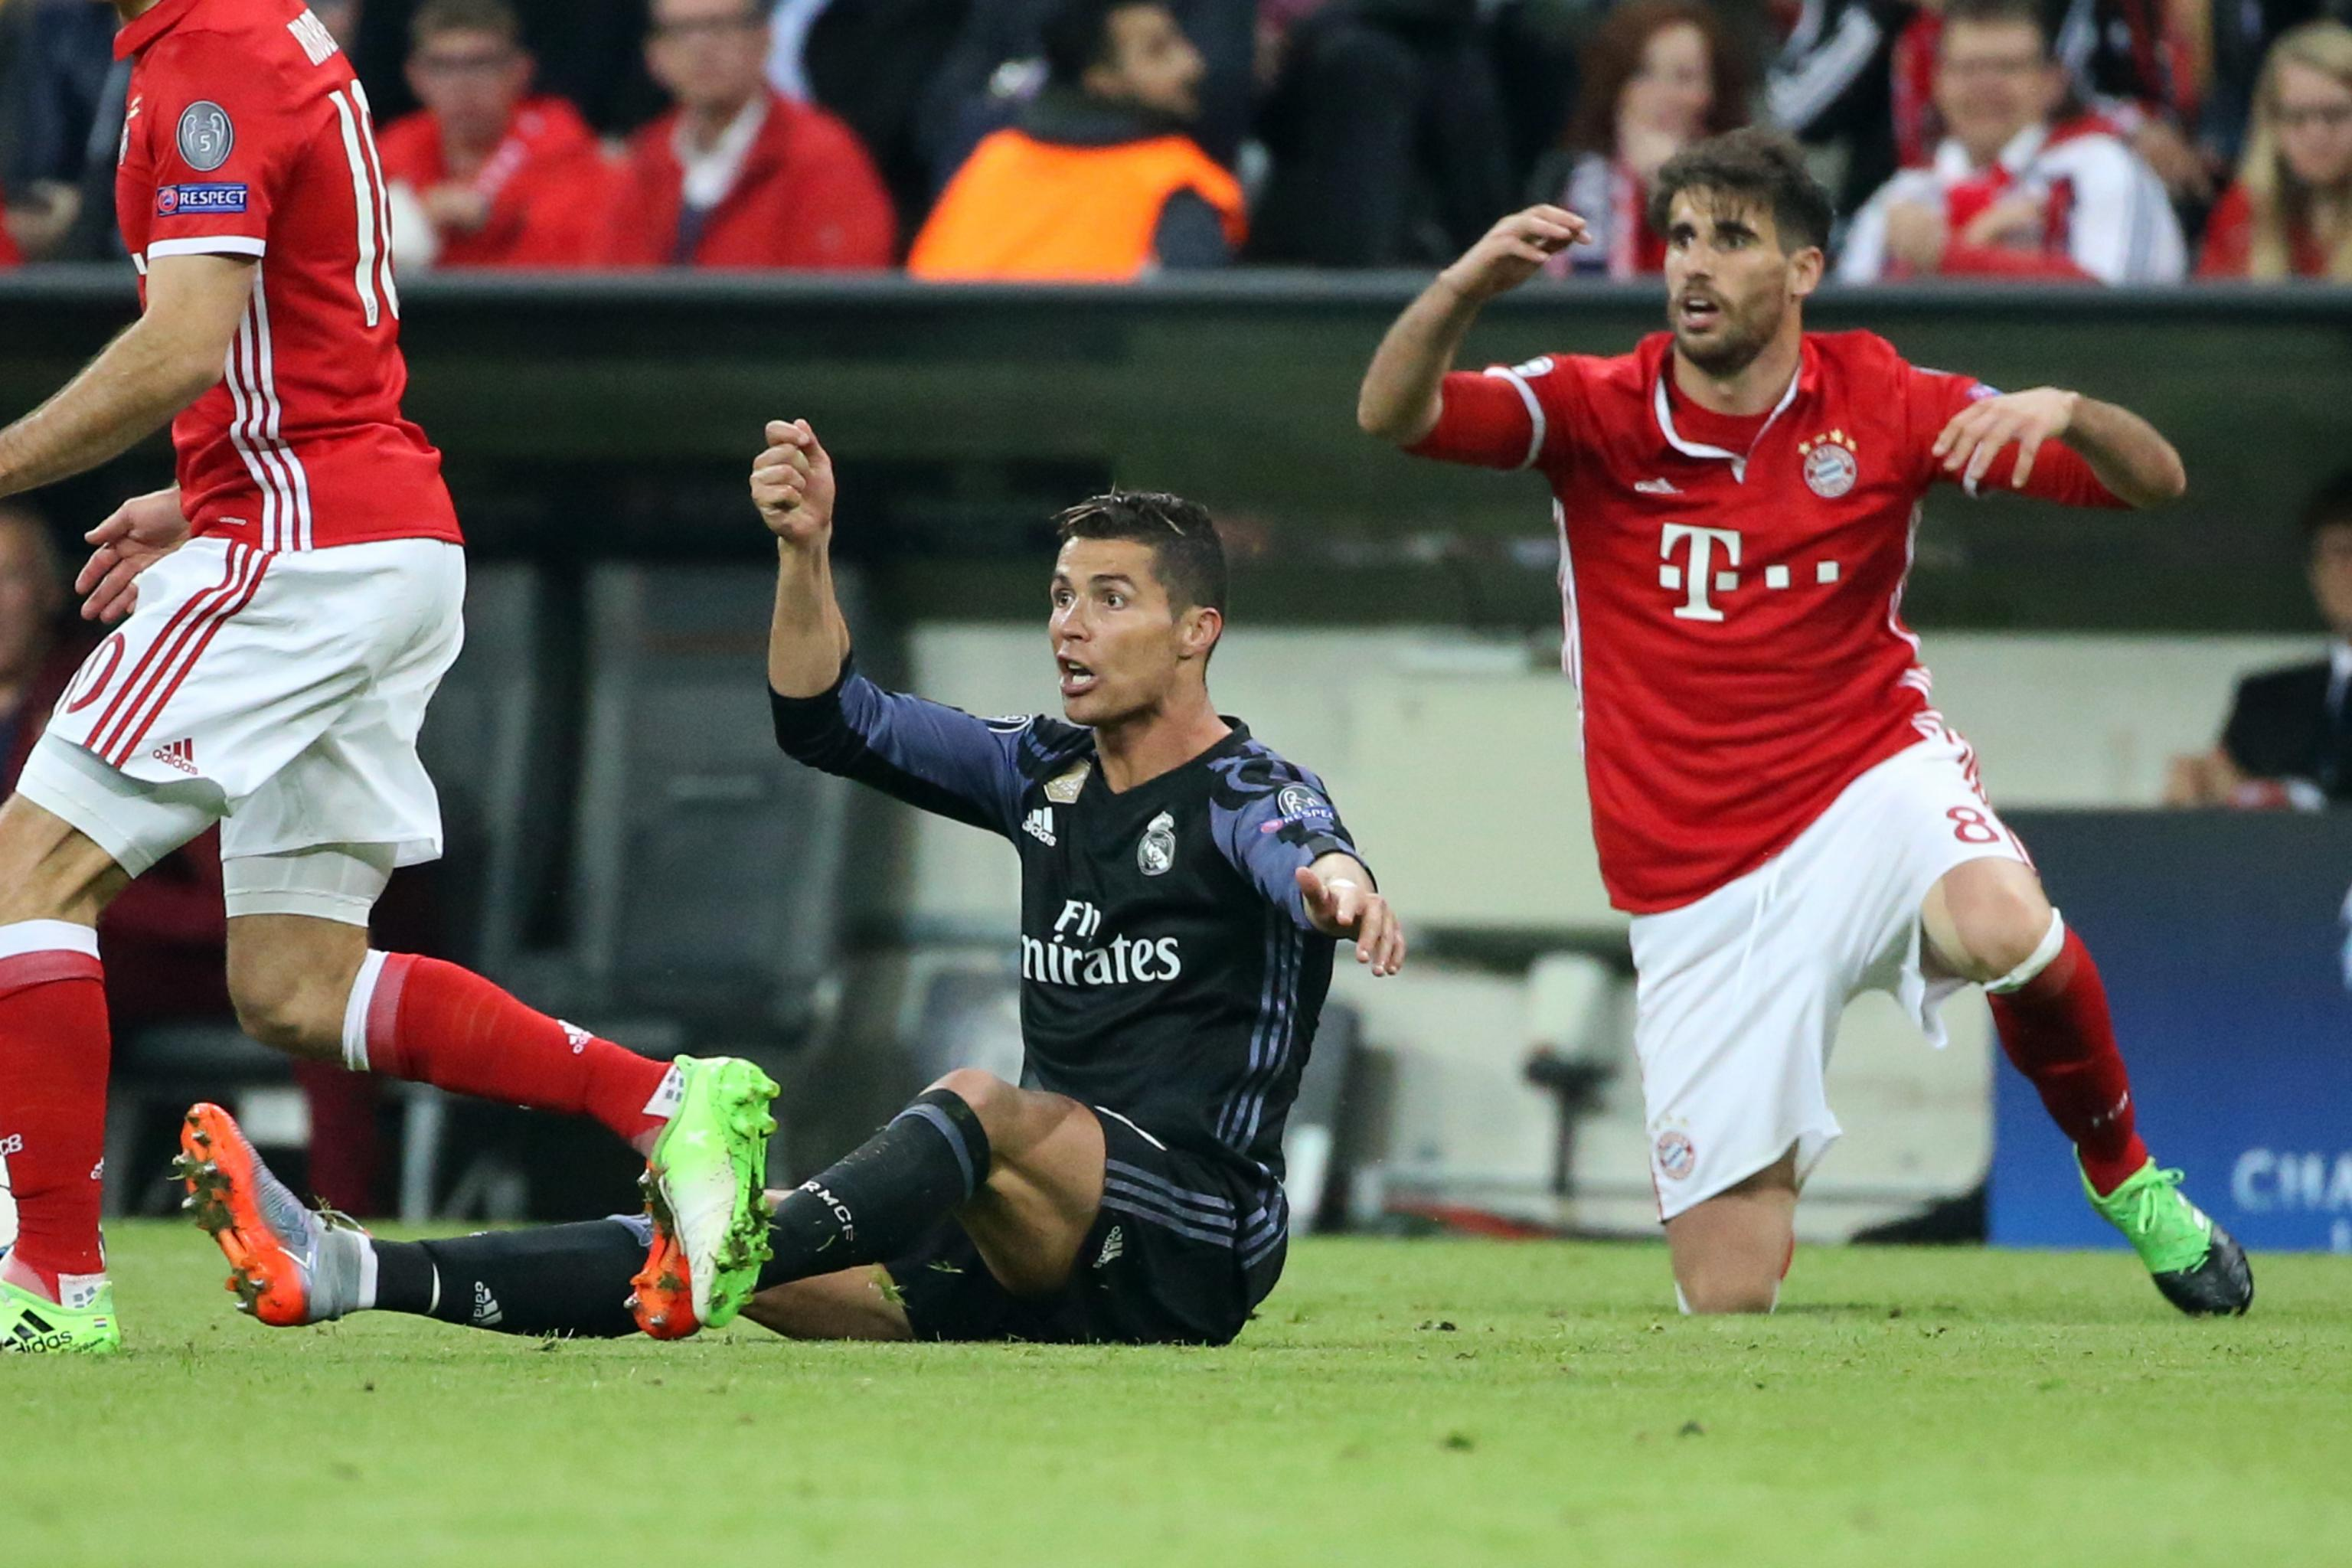 Real Madrid Vs Bayern Munich Team News Live Stream Tv Info For Ucl Match Bleacher Report Latest News Videos And Highlights